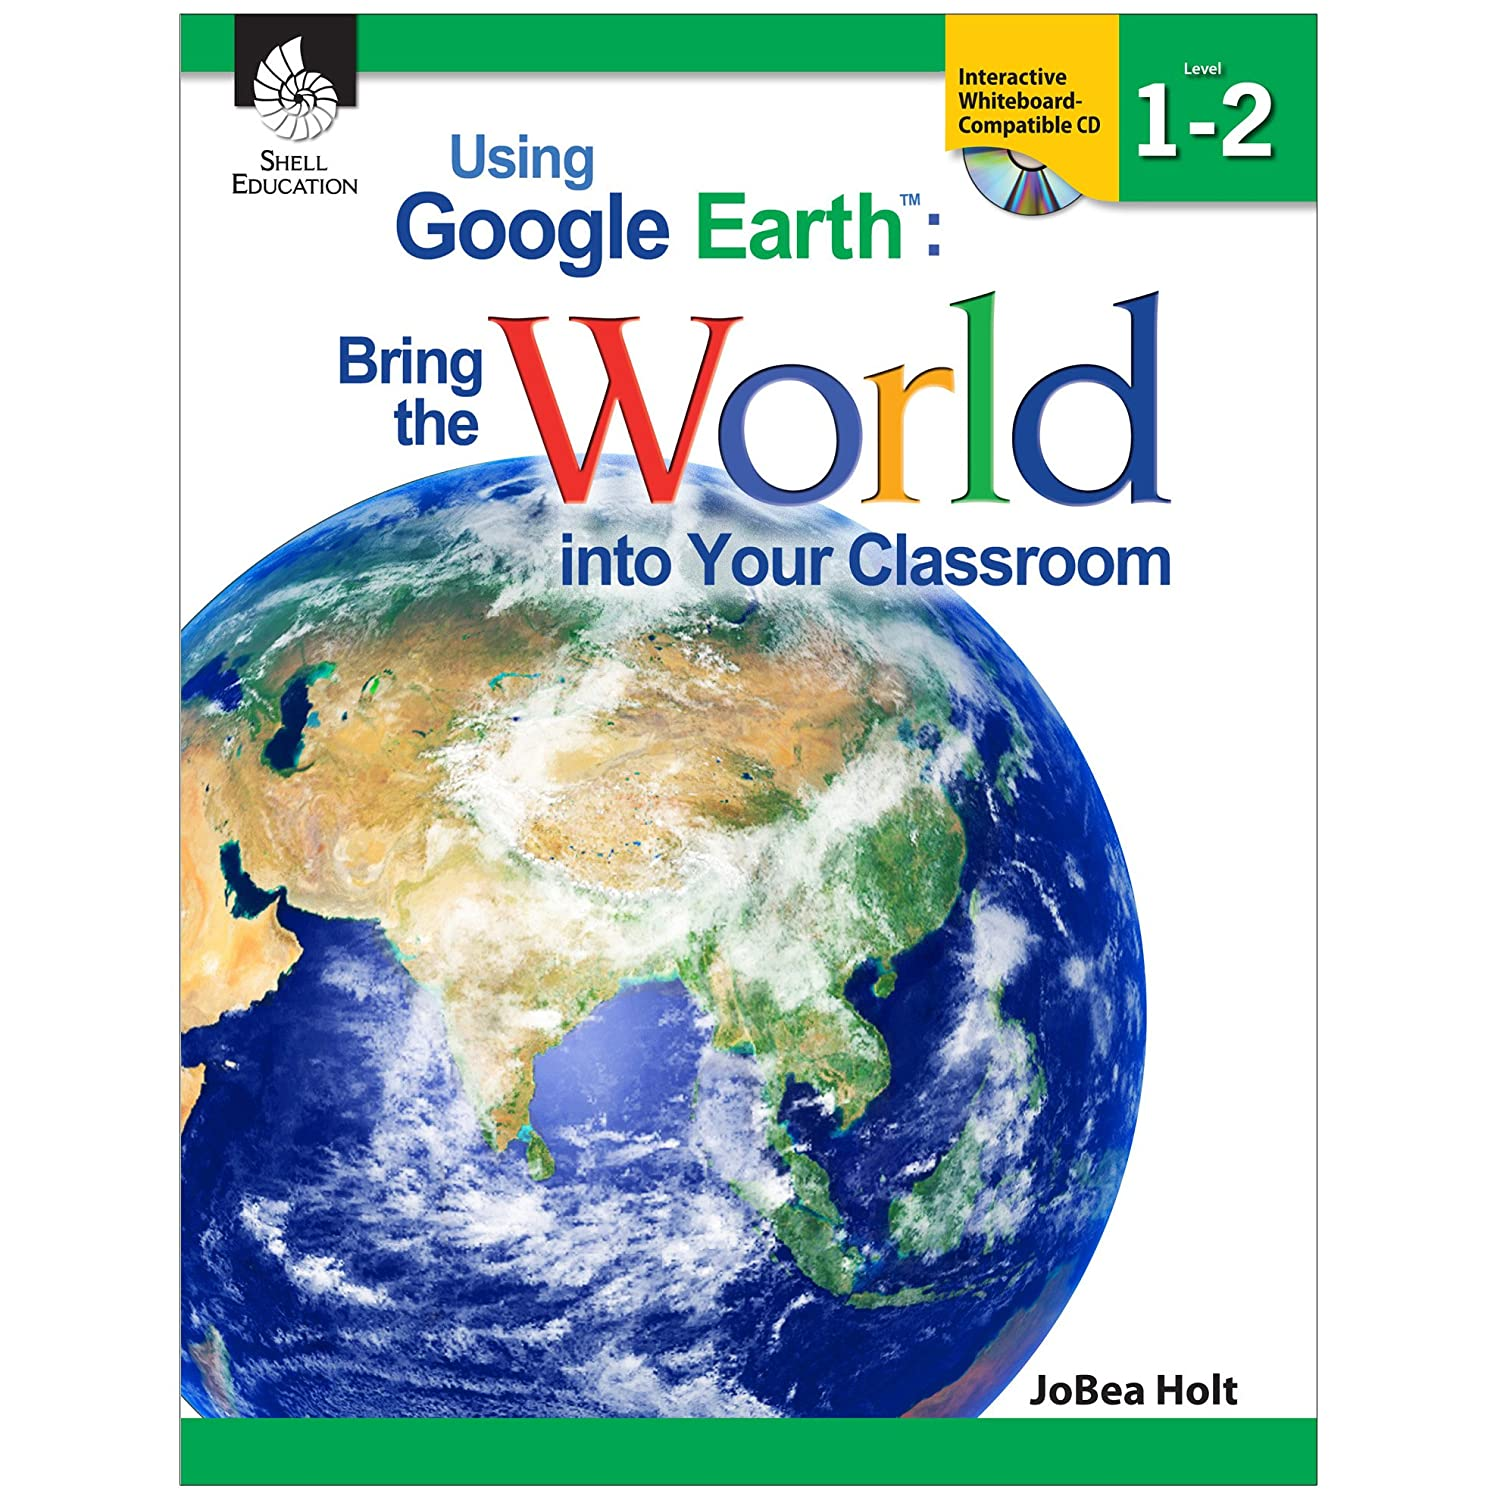 Using Google Earth : Bring the World into Your Classroom Levels 1-2